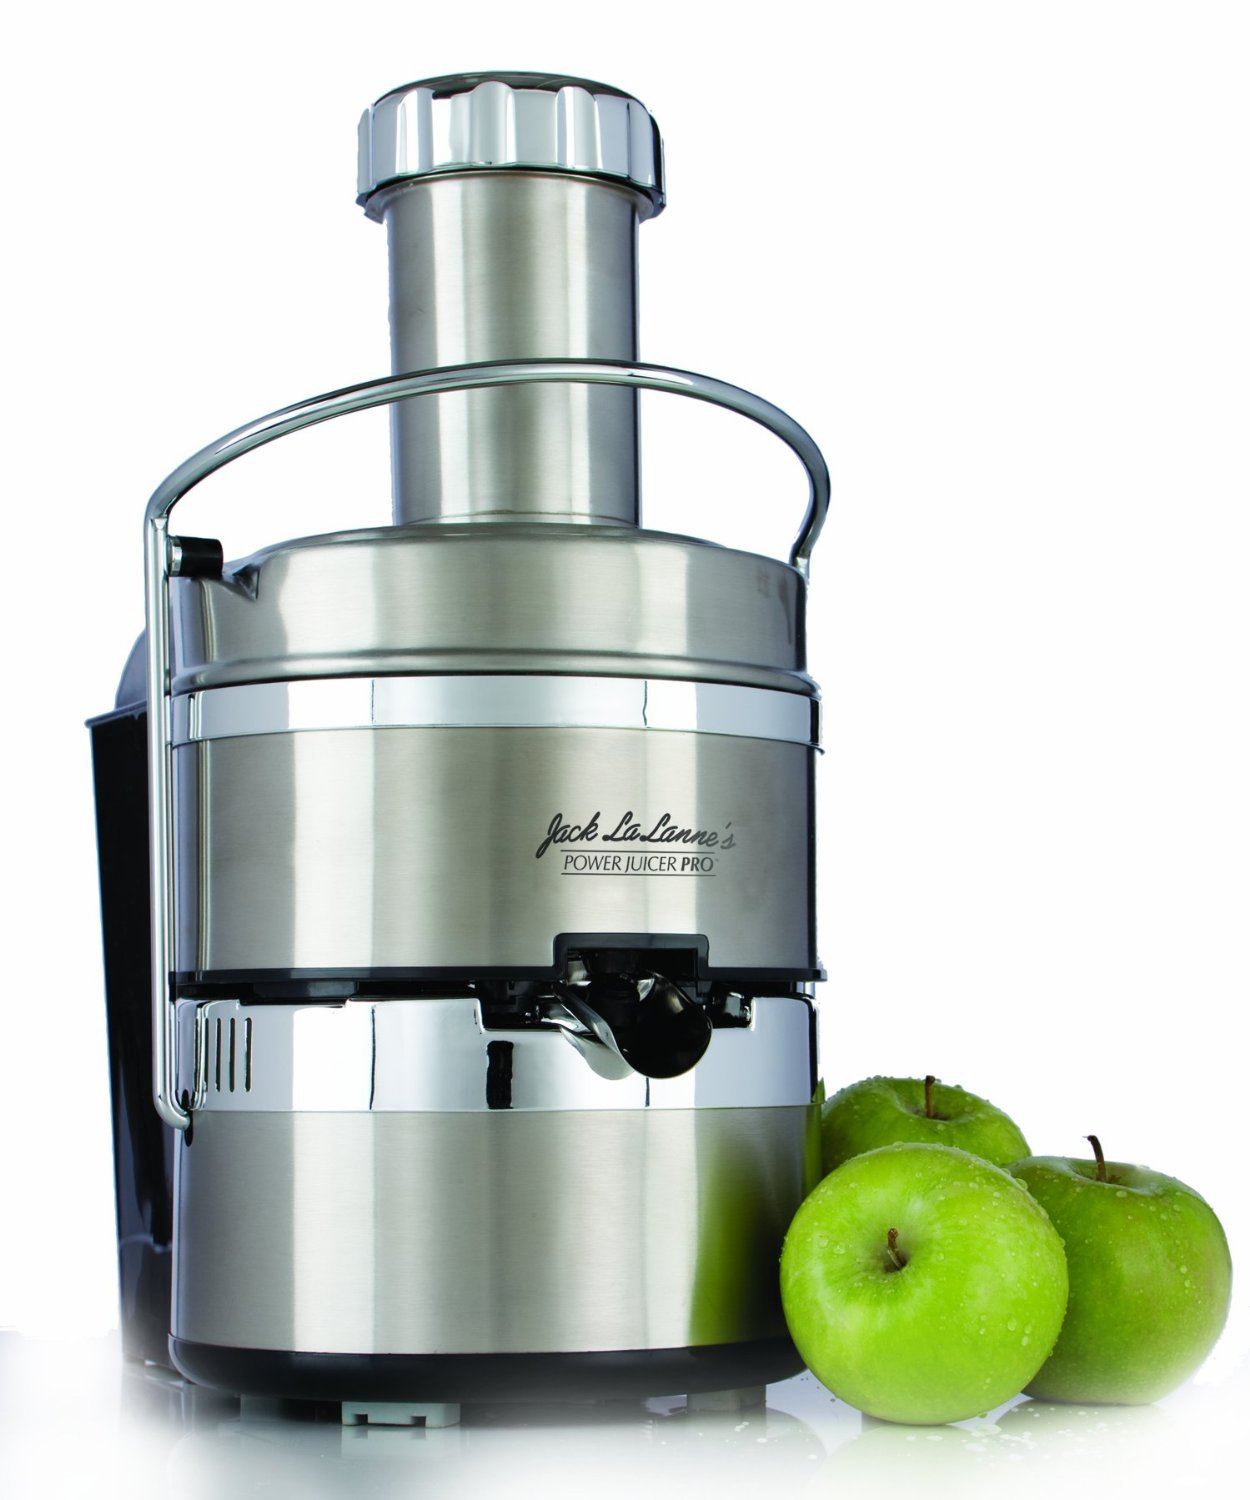 2015 Best Juicer on the Market to Buy for Juicing Fruits & vegetables Product Reviews & Best ...